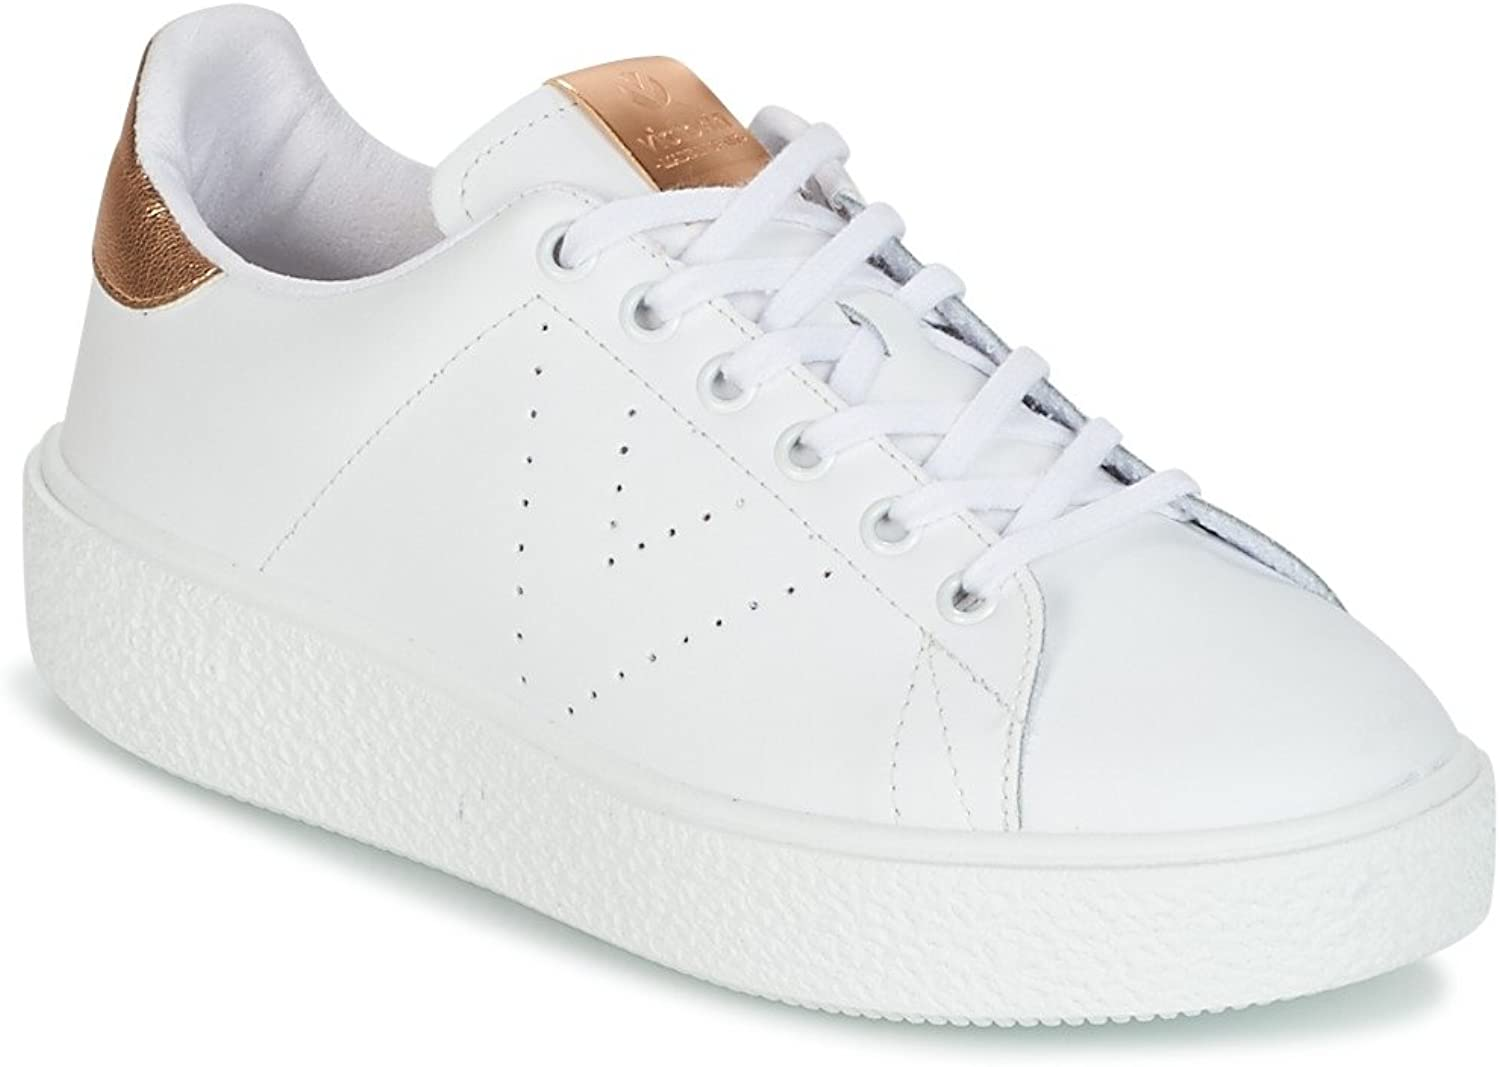 Victoria shoes Woman Low Sneakers with Platform 262115 White RAMATO